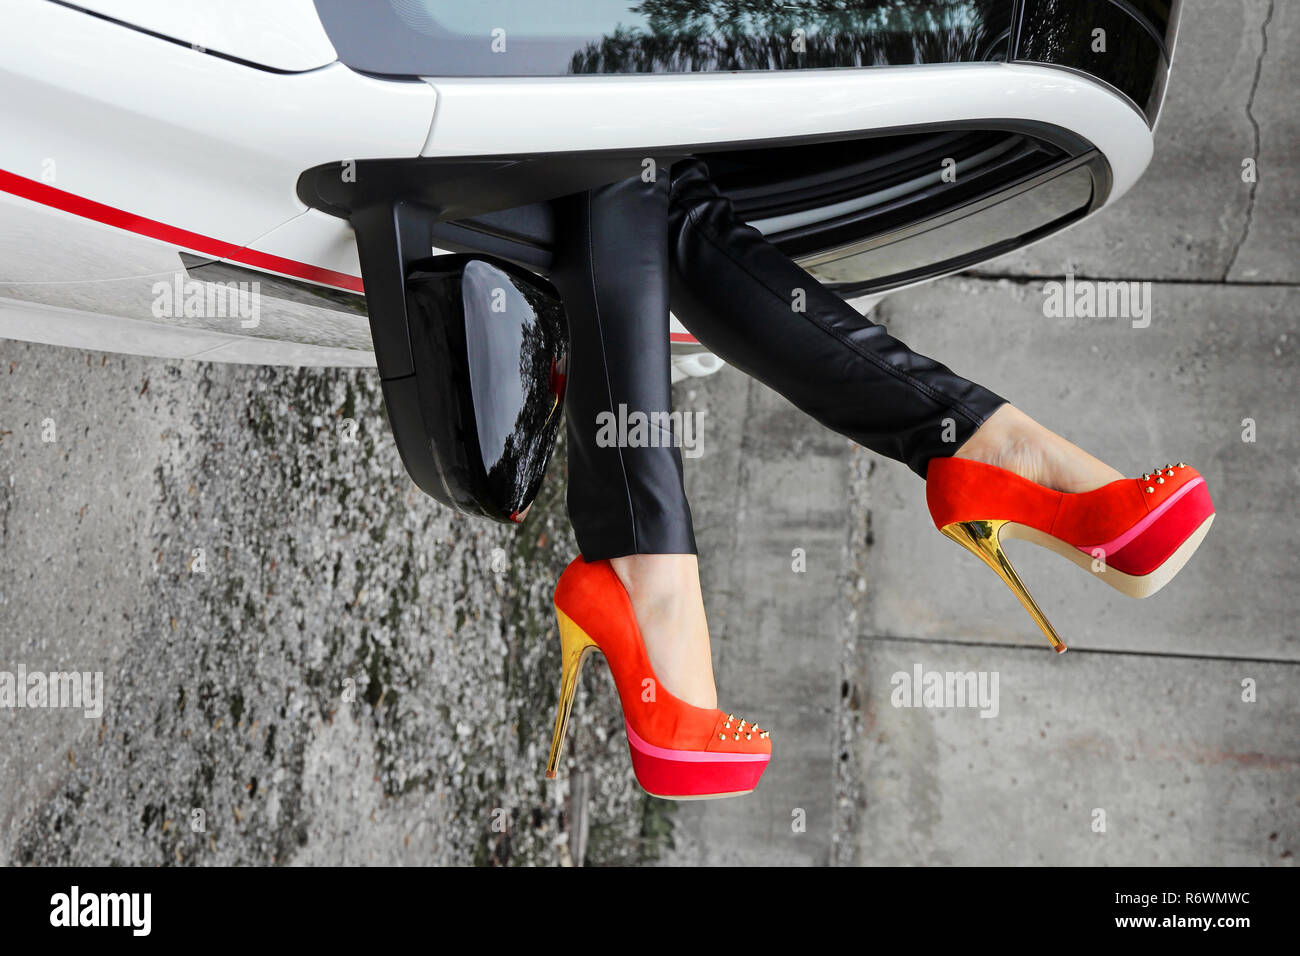 b47a3e4128d a woman stretches her legs out of the window of a car with high heels -